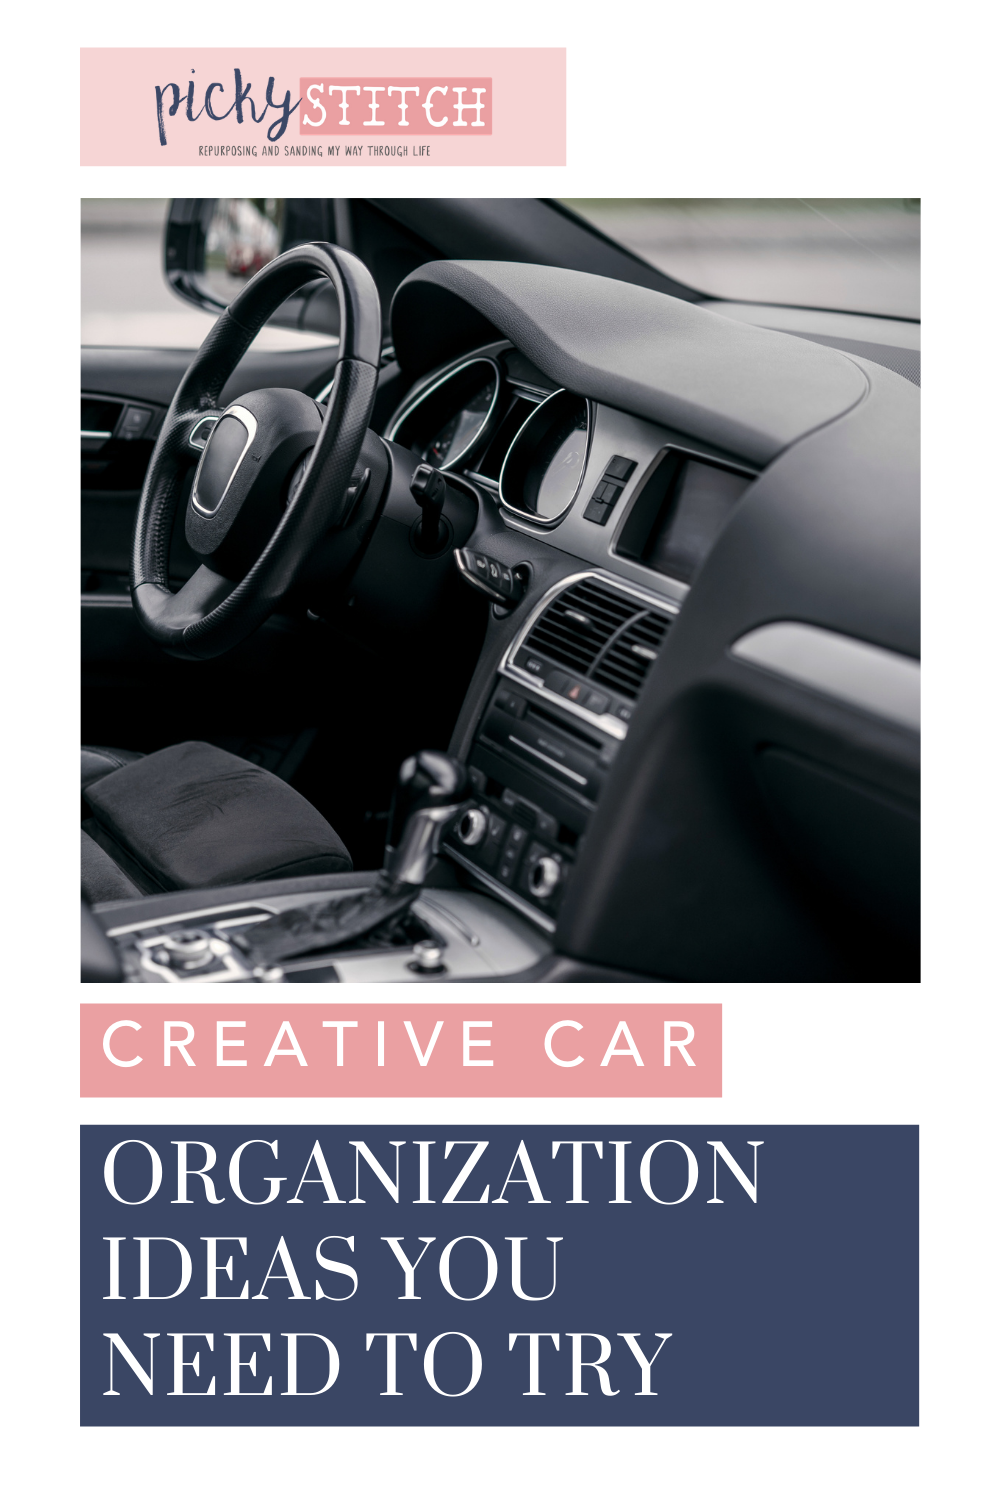 Pickystitch.com is loaded with simple ideas for organizing your home and life! Ditch your messy ride right away! Check out these easy and creative ways to get your car organized right now!